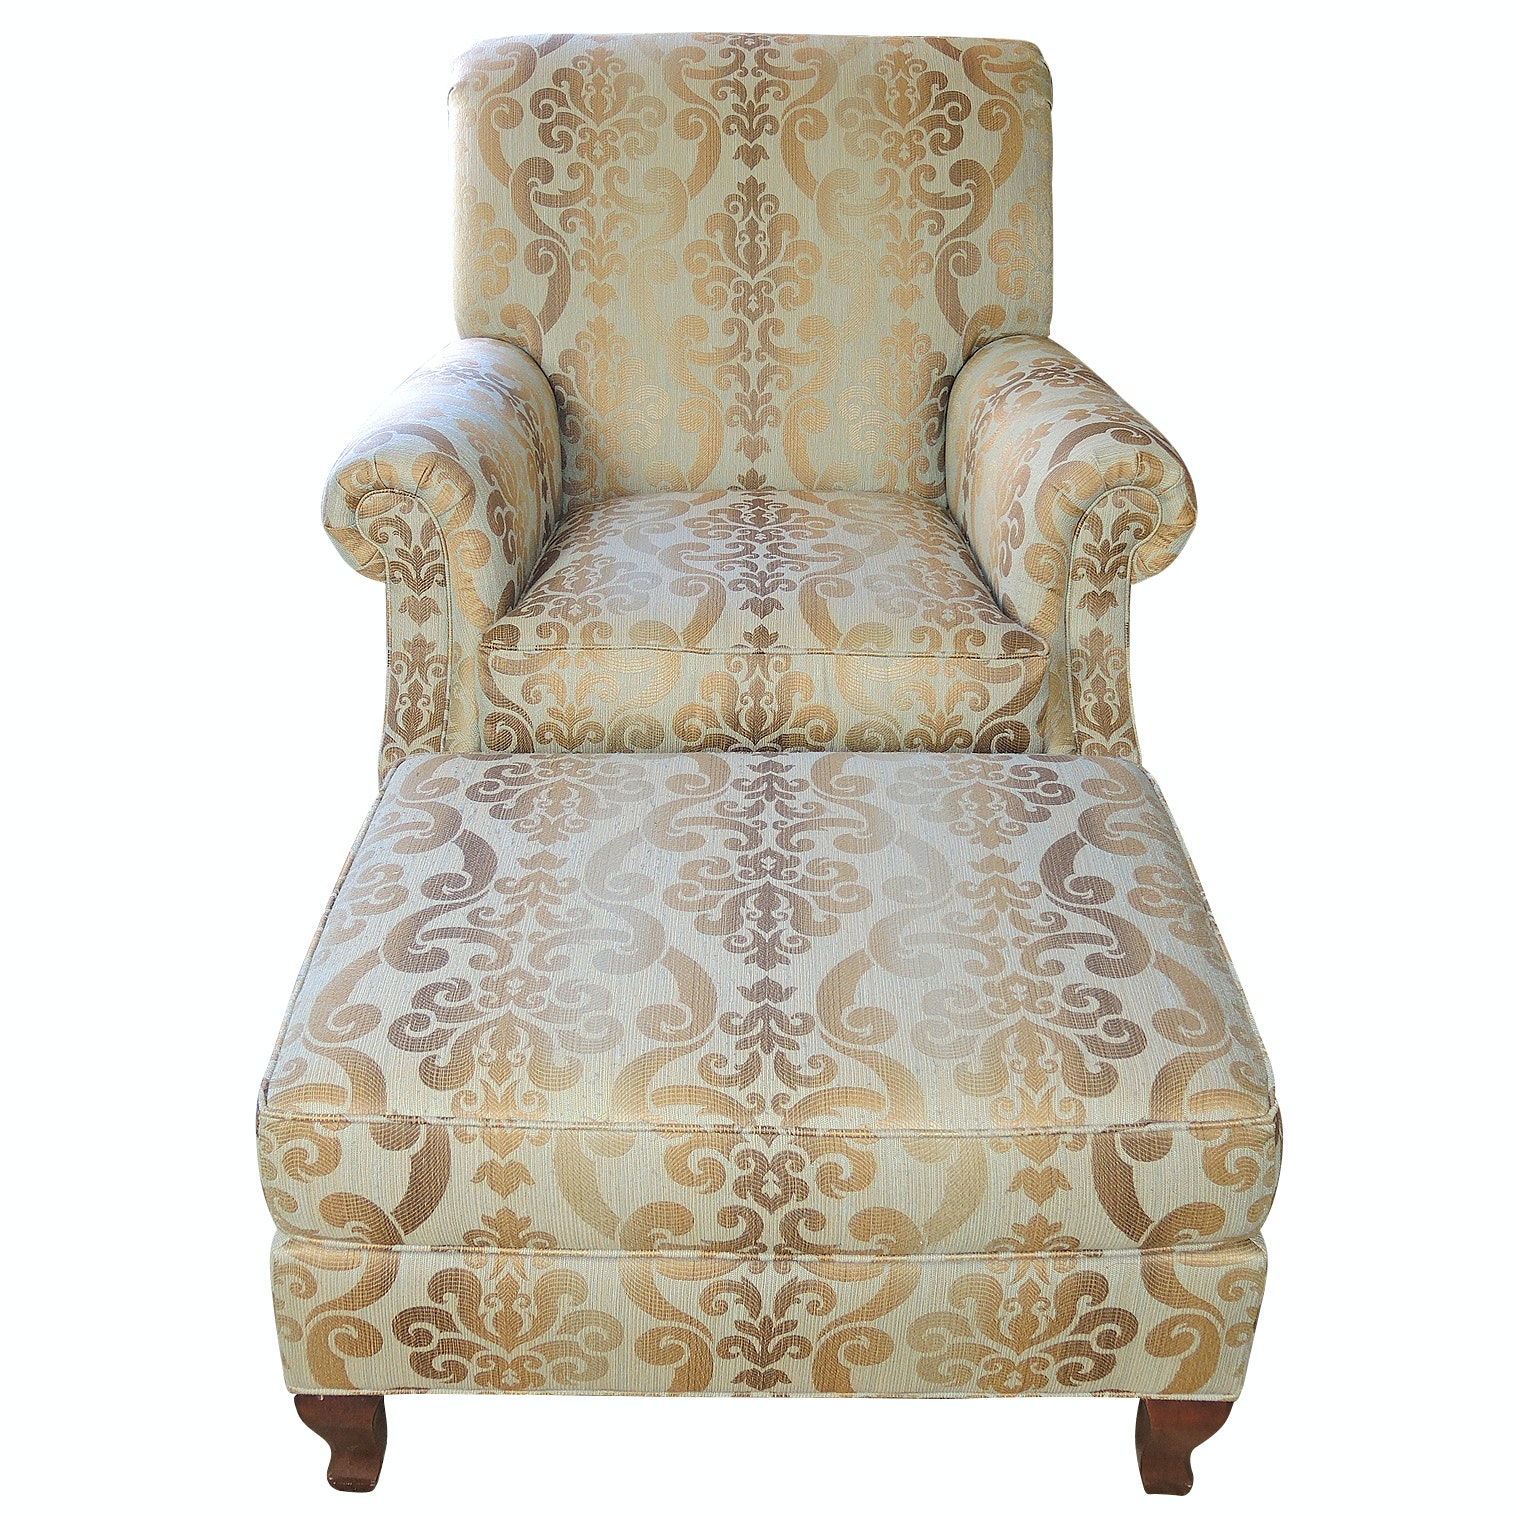 Ethan Allen Upholstered Arm Chair and Ottoman